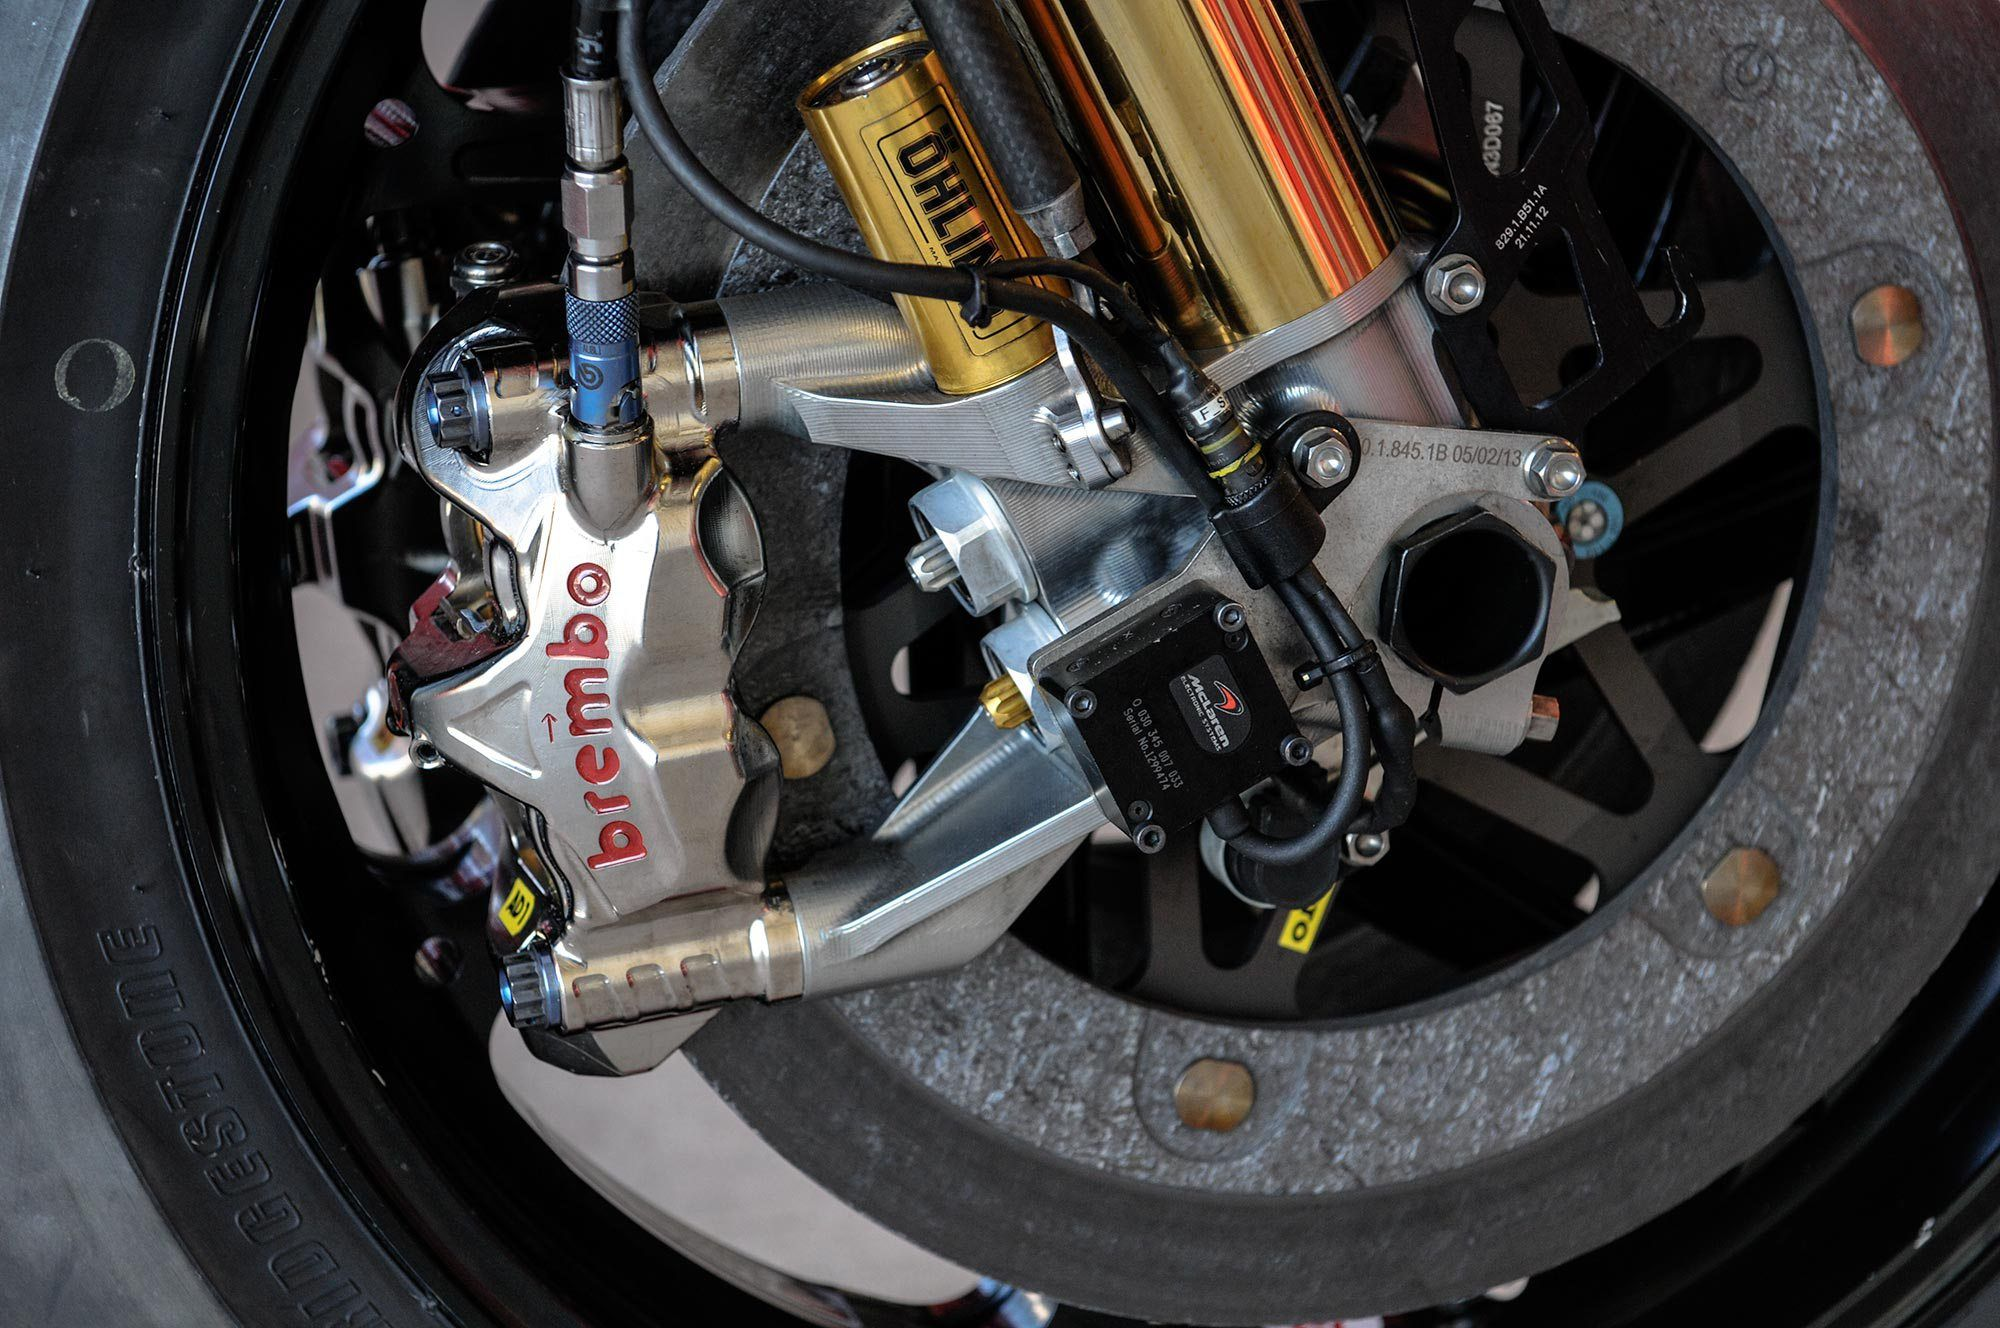 Brake Motogp Up Close With The Ducati Desmosedici Gp13 Asphalt Rubber Ducati Brembo Motogp